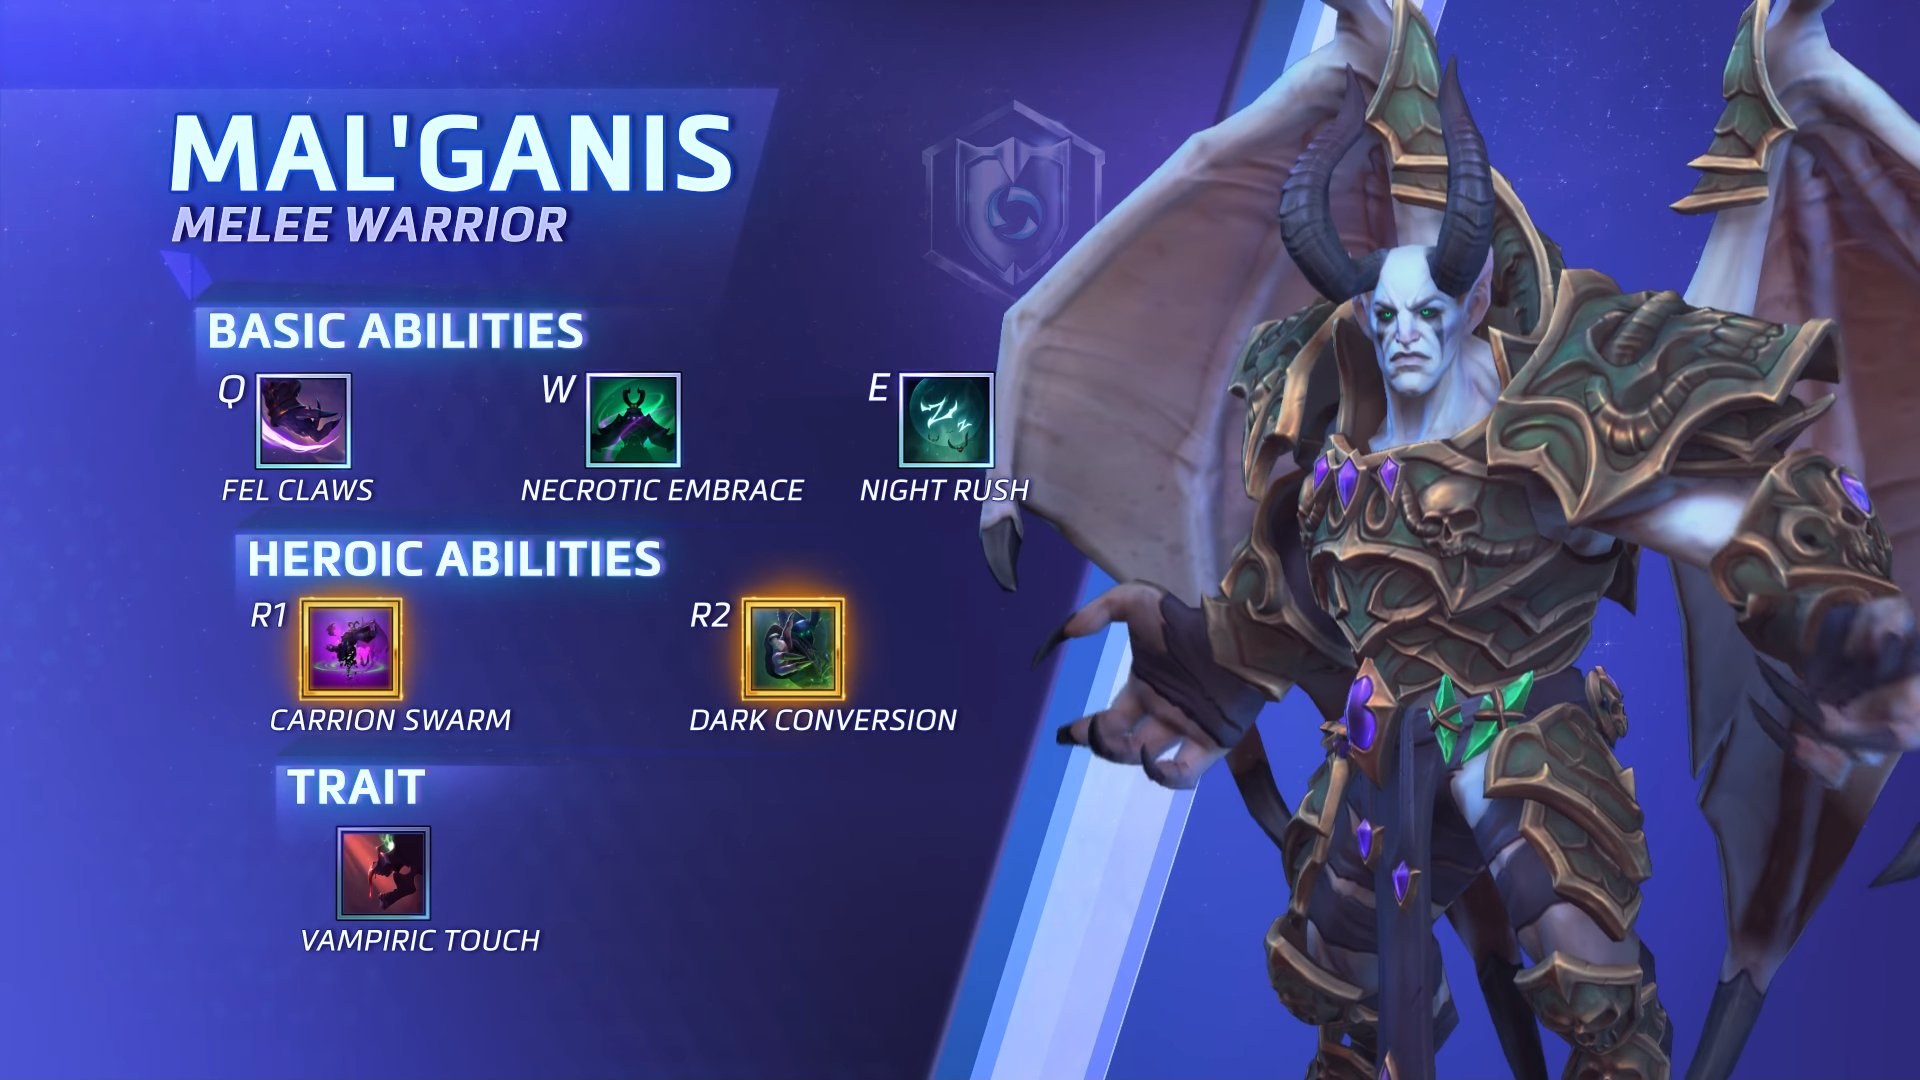 Despicable Dreadlord Mal Ganis Corrupts Heroes Of The Storm Shacknews Mal'ganis abilities include vampiric embrace which this video takes a lot of the mal'ganis w build talents. despicable dreadlord mal ganis corrupts